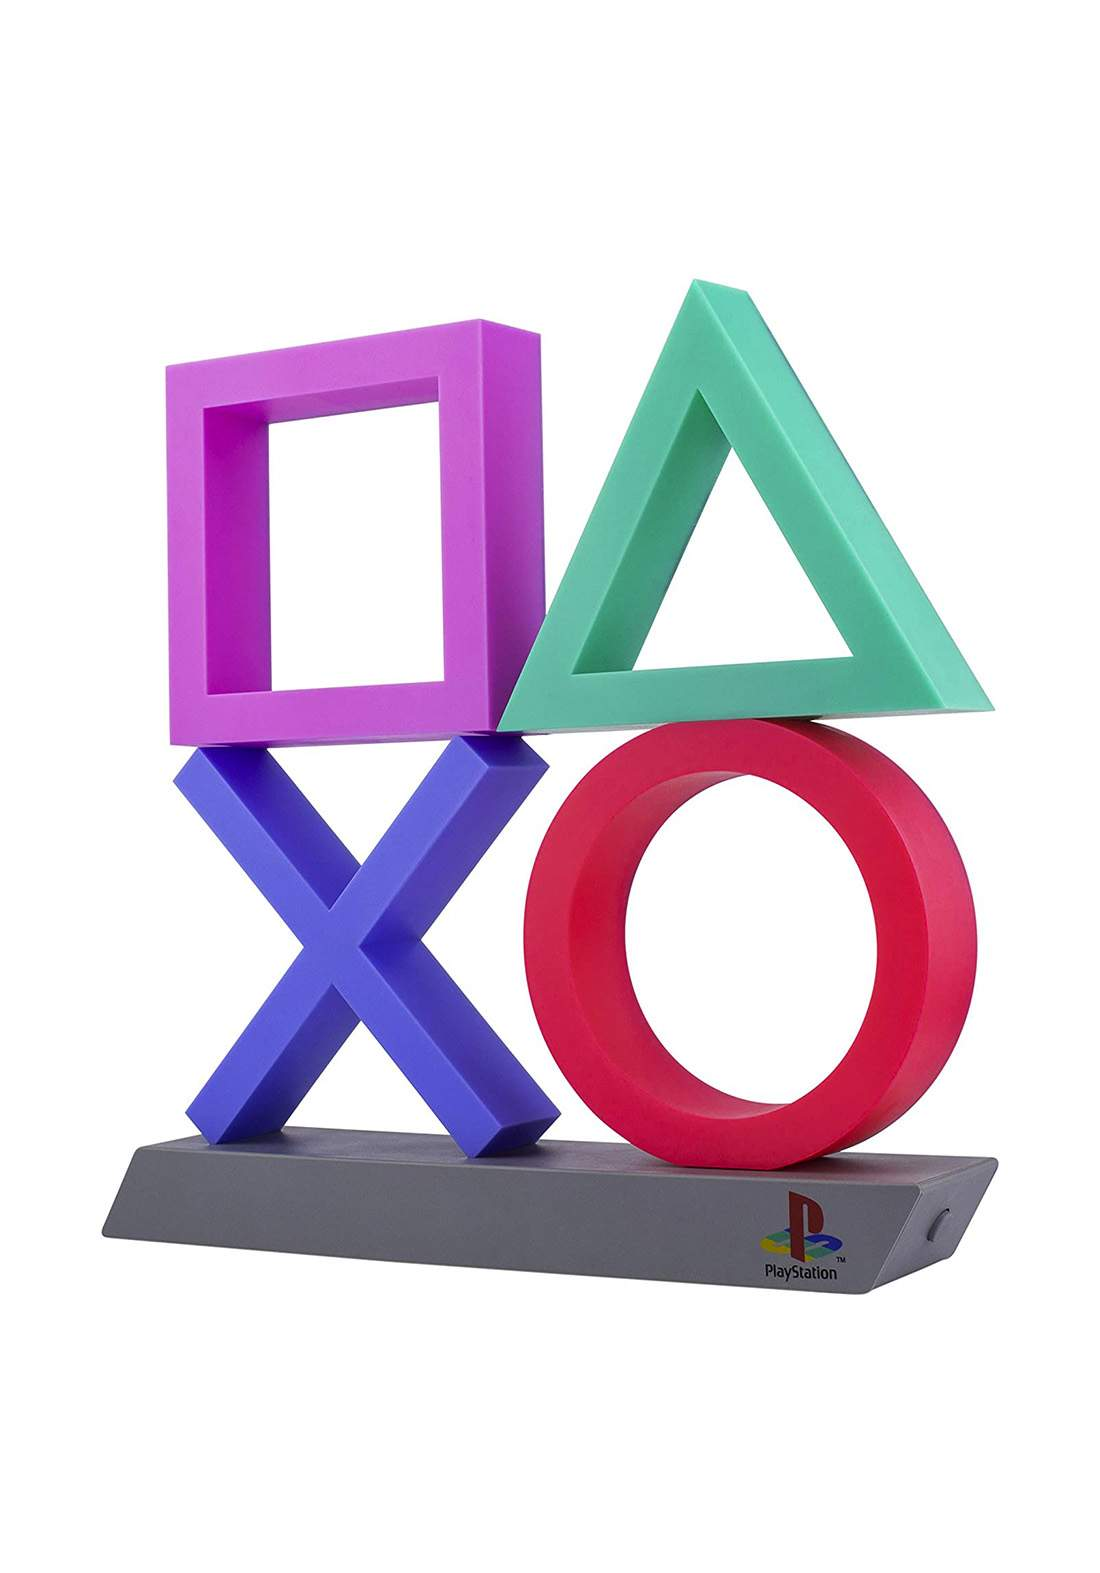 Playstation Icons Light XL ضوء ايقونات بلاستيشن